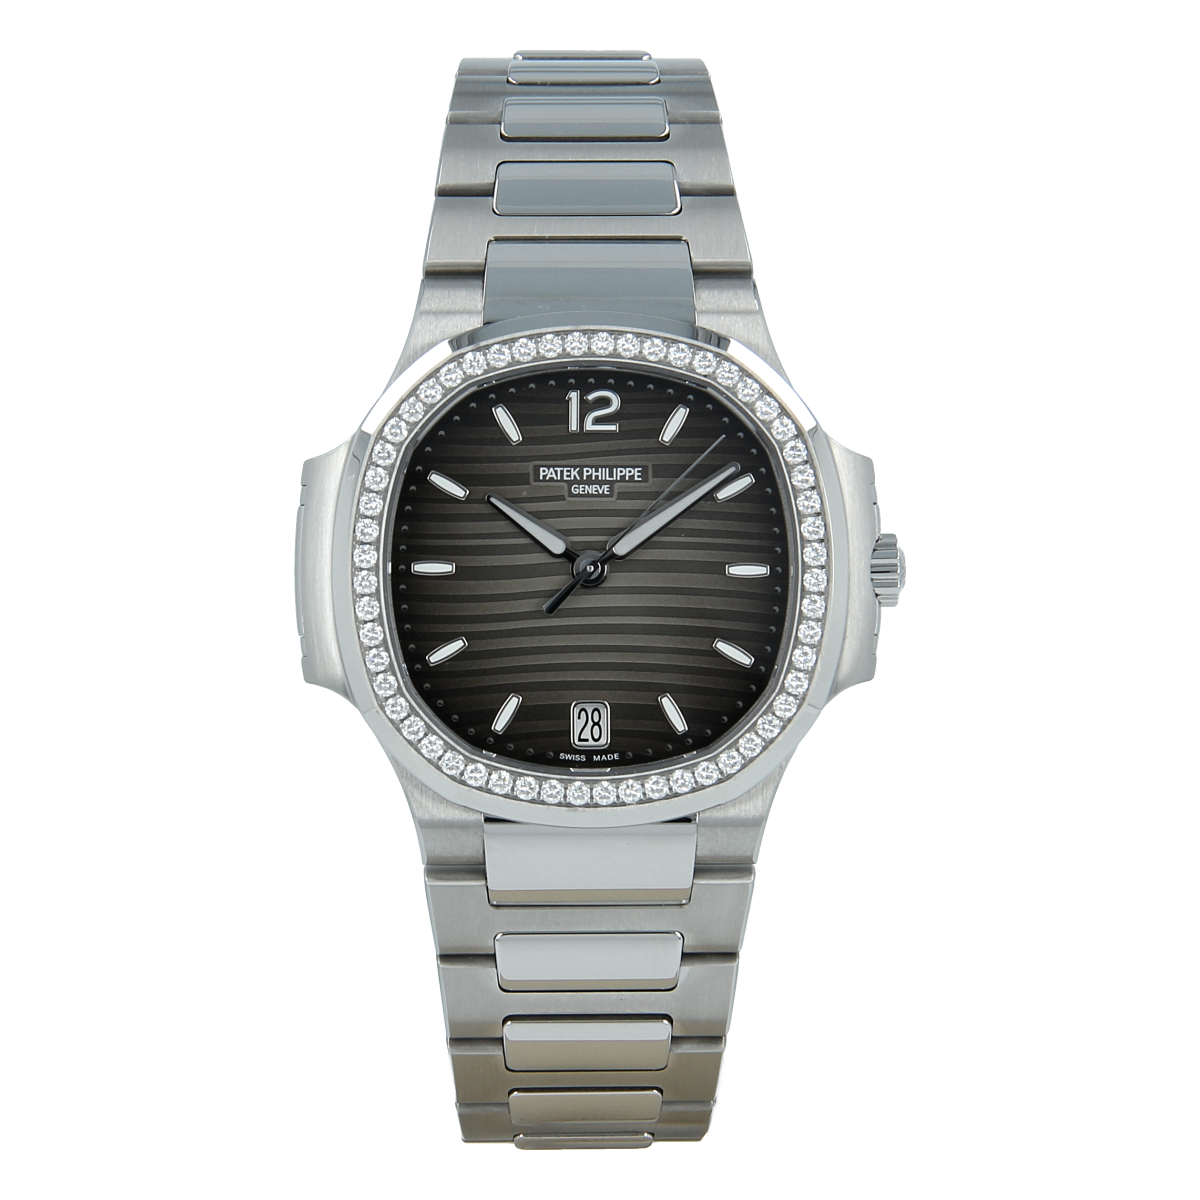 Patek Philippe Ladies' Nautilus Gray Dial with Diamonds Steel *Brand-New* | Buy pre-owned Patek Philippe watch